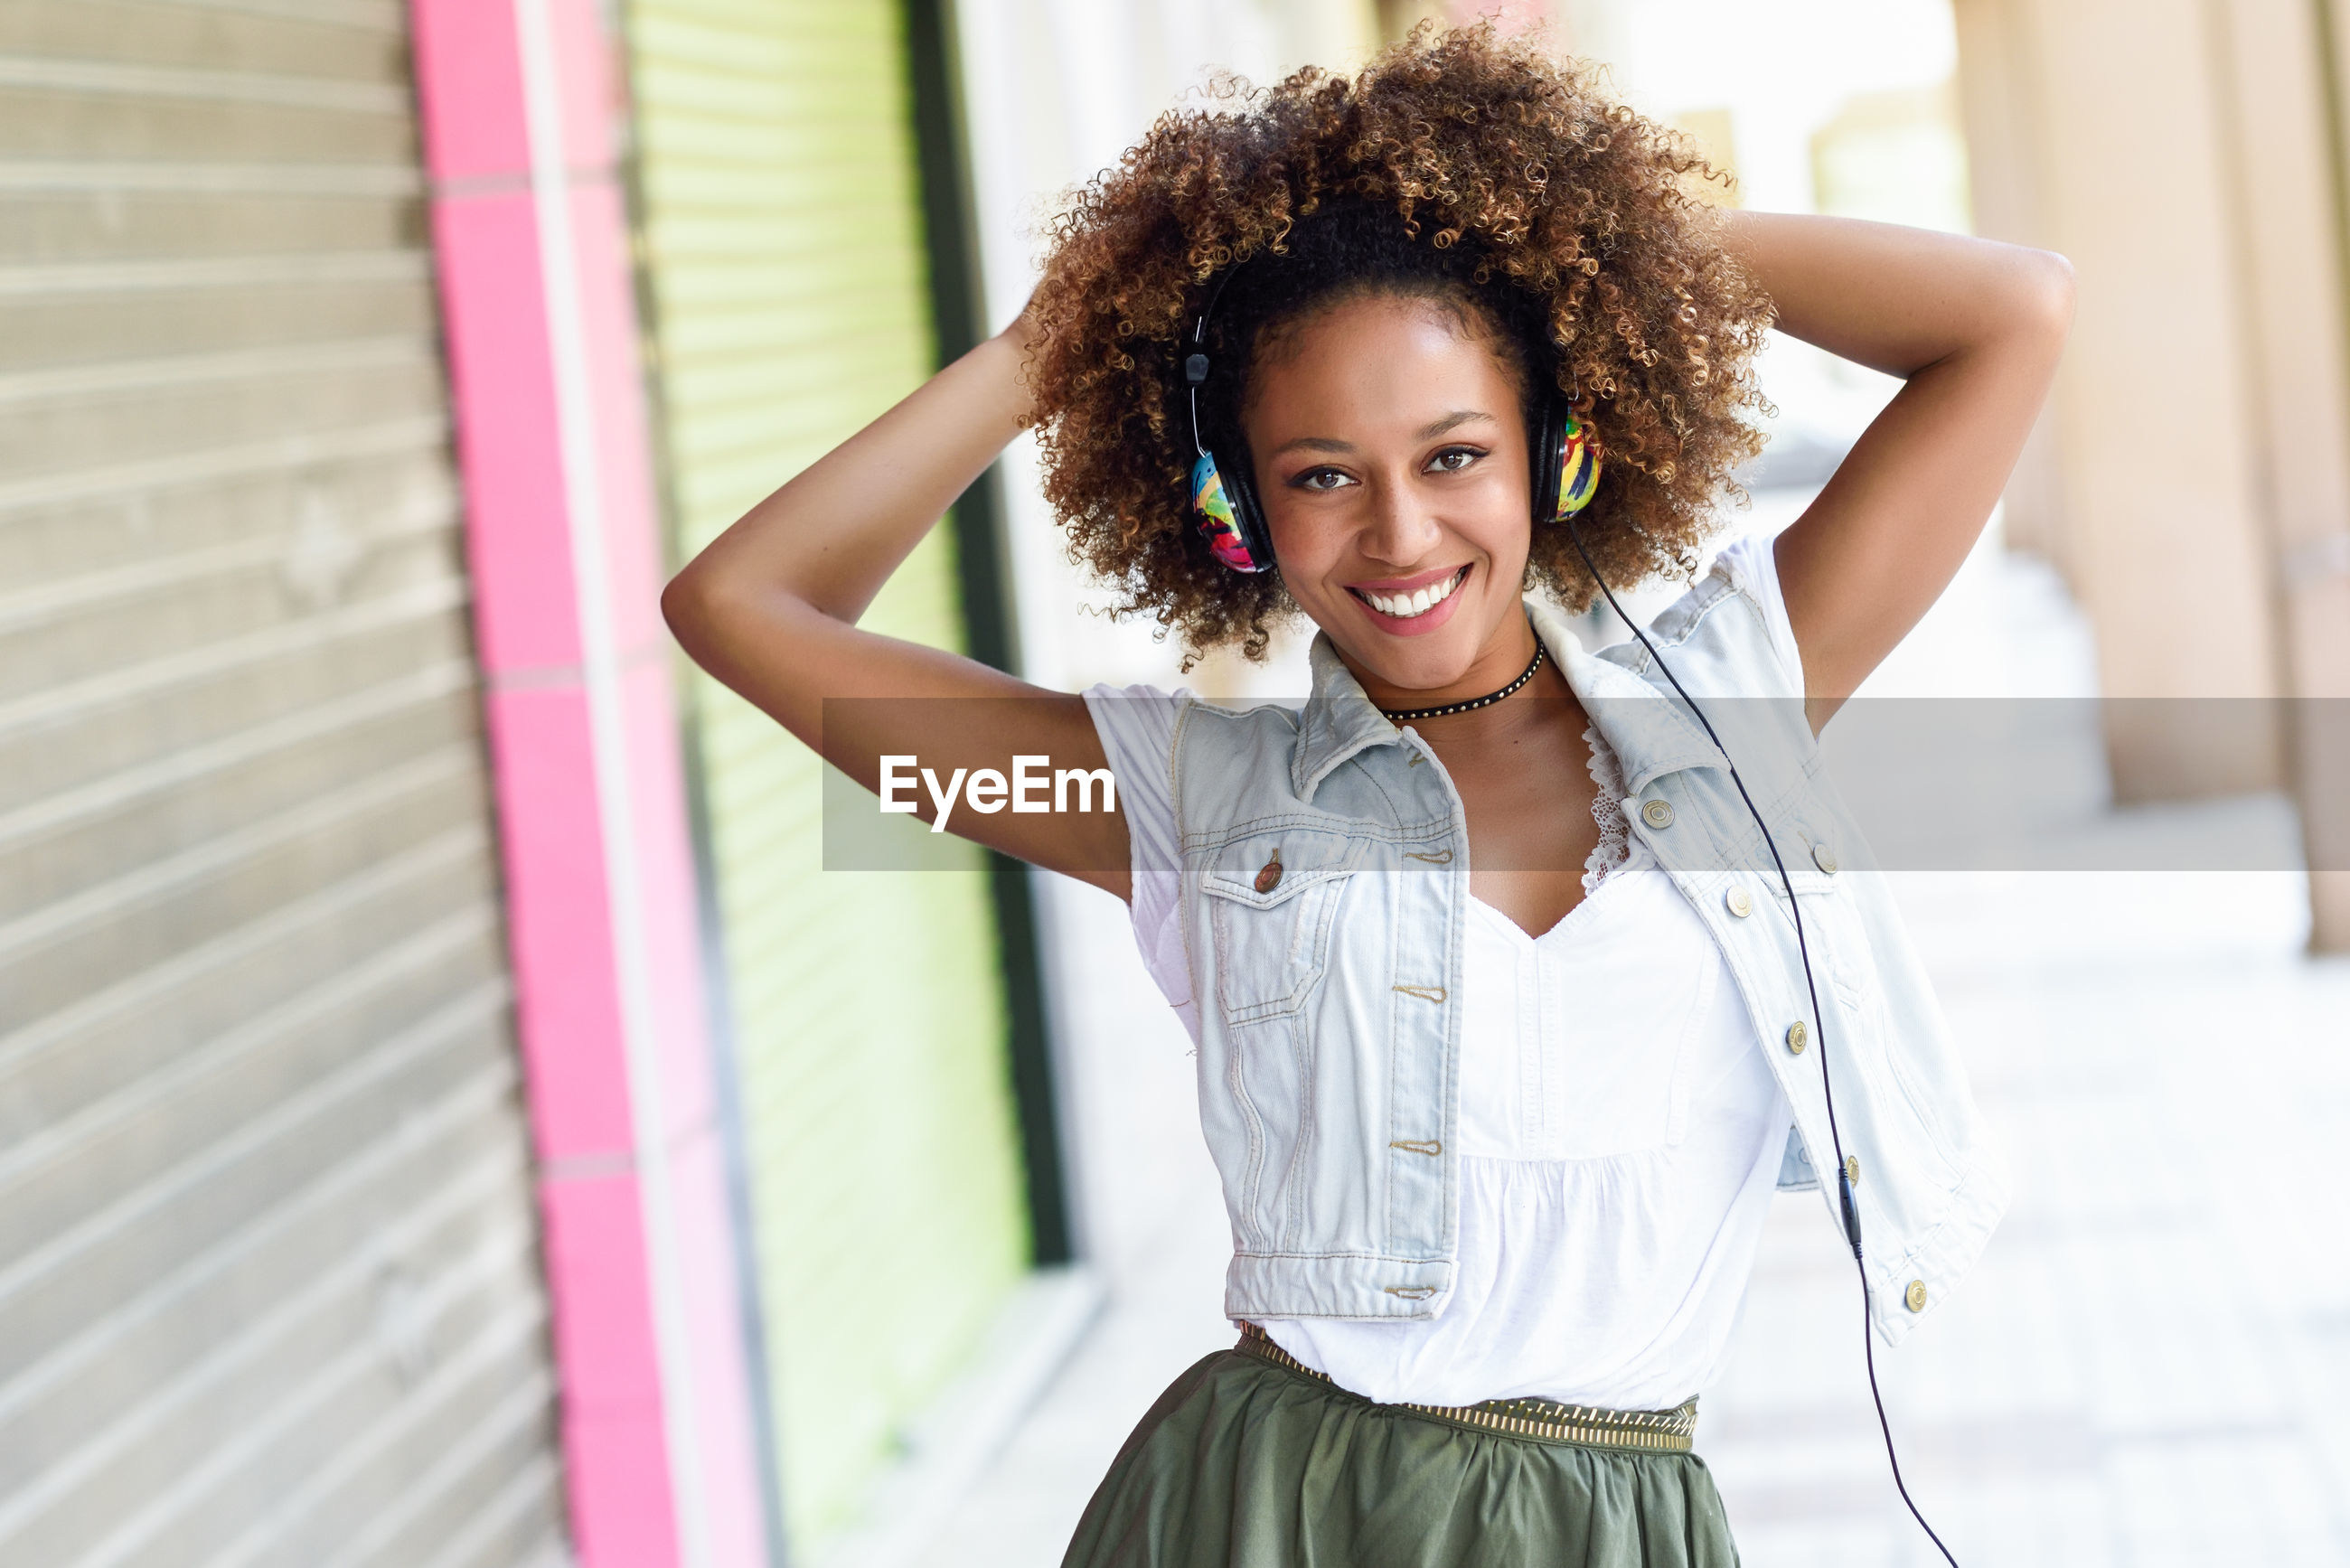 Portrait of mid adult woman with curly hair standing outdoors